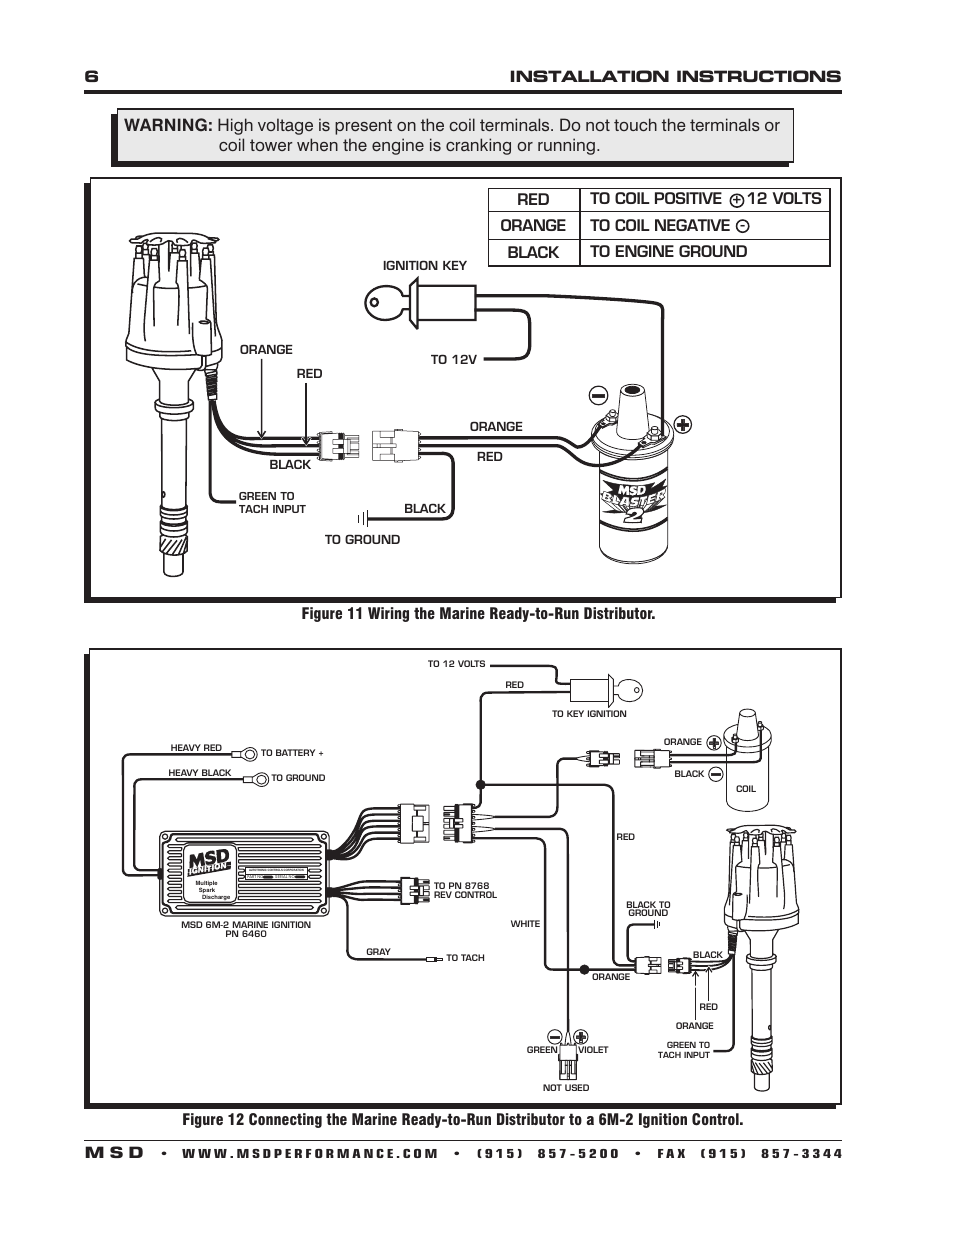 [SCHEMATICS_48YU]  DIAGRAM] Ford 460 Coil Wire Diagram FULL Version HD Quality Wire Diagram -  M1911A1SCHEMATIC9793.CONCESSIONARIABELOGISENIGALLIA.IT | Ford 460 Coil Wire Diagram |  | concessionariabelogisenigallia.it